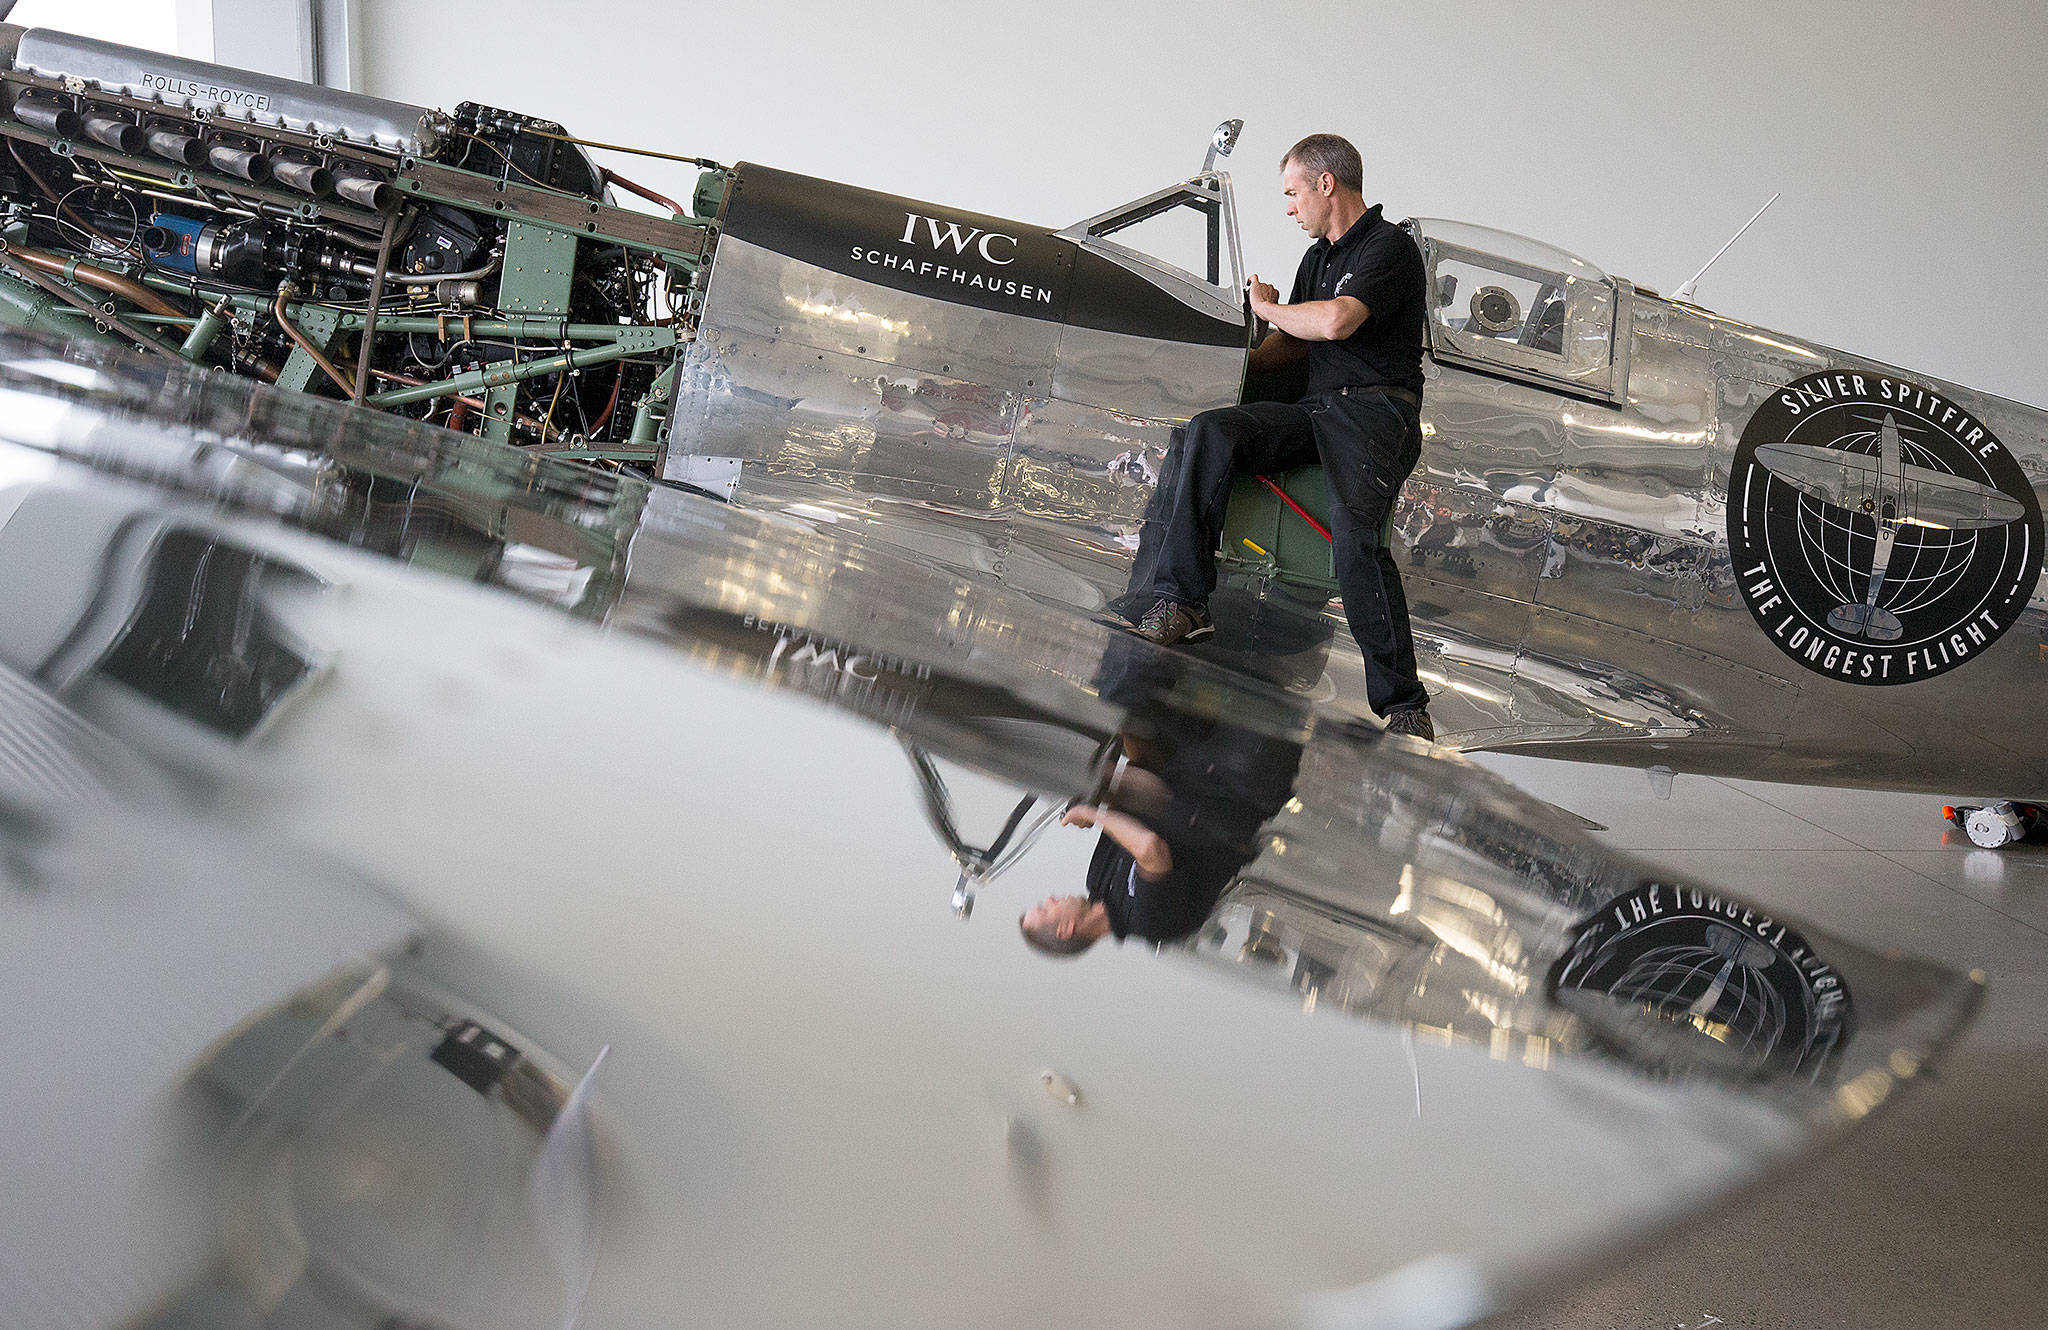 Reflected in the polished aluminum wing, Chief Engineer Martin Overall reaches into the cockpit of the Silver Spitfire, a World War II Supermarine Spitfire Mk.IX fighter plane, during a 50-hour maintenance checkup at the Historic Flight Foundation on Wednesday in Mukilteo. (Andy Bronson / The Herald)